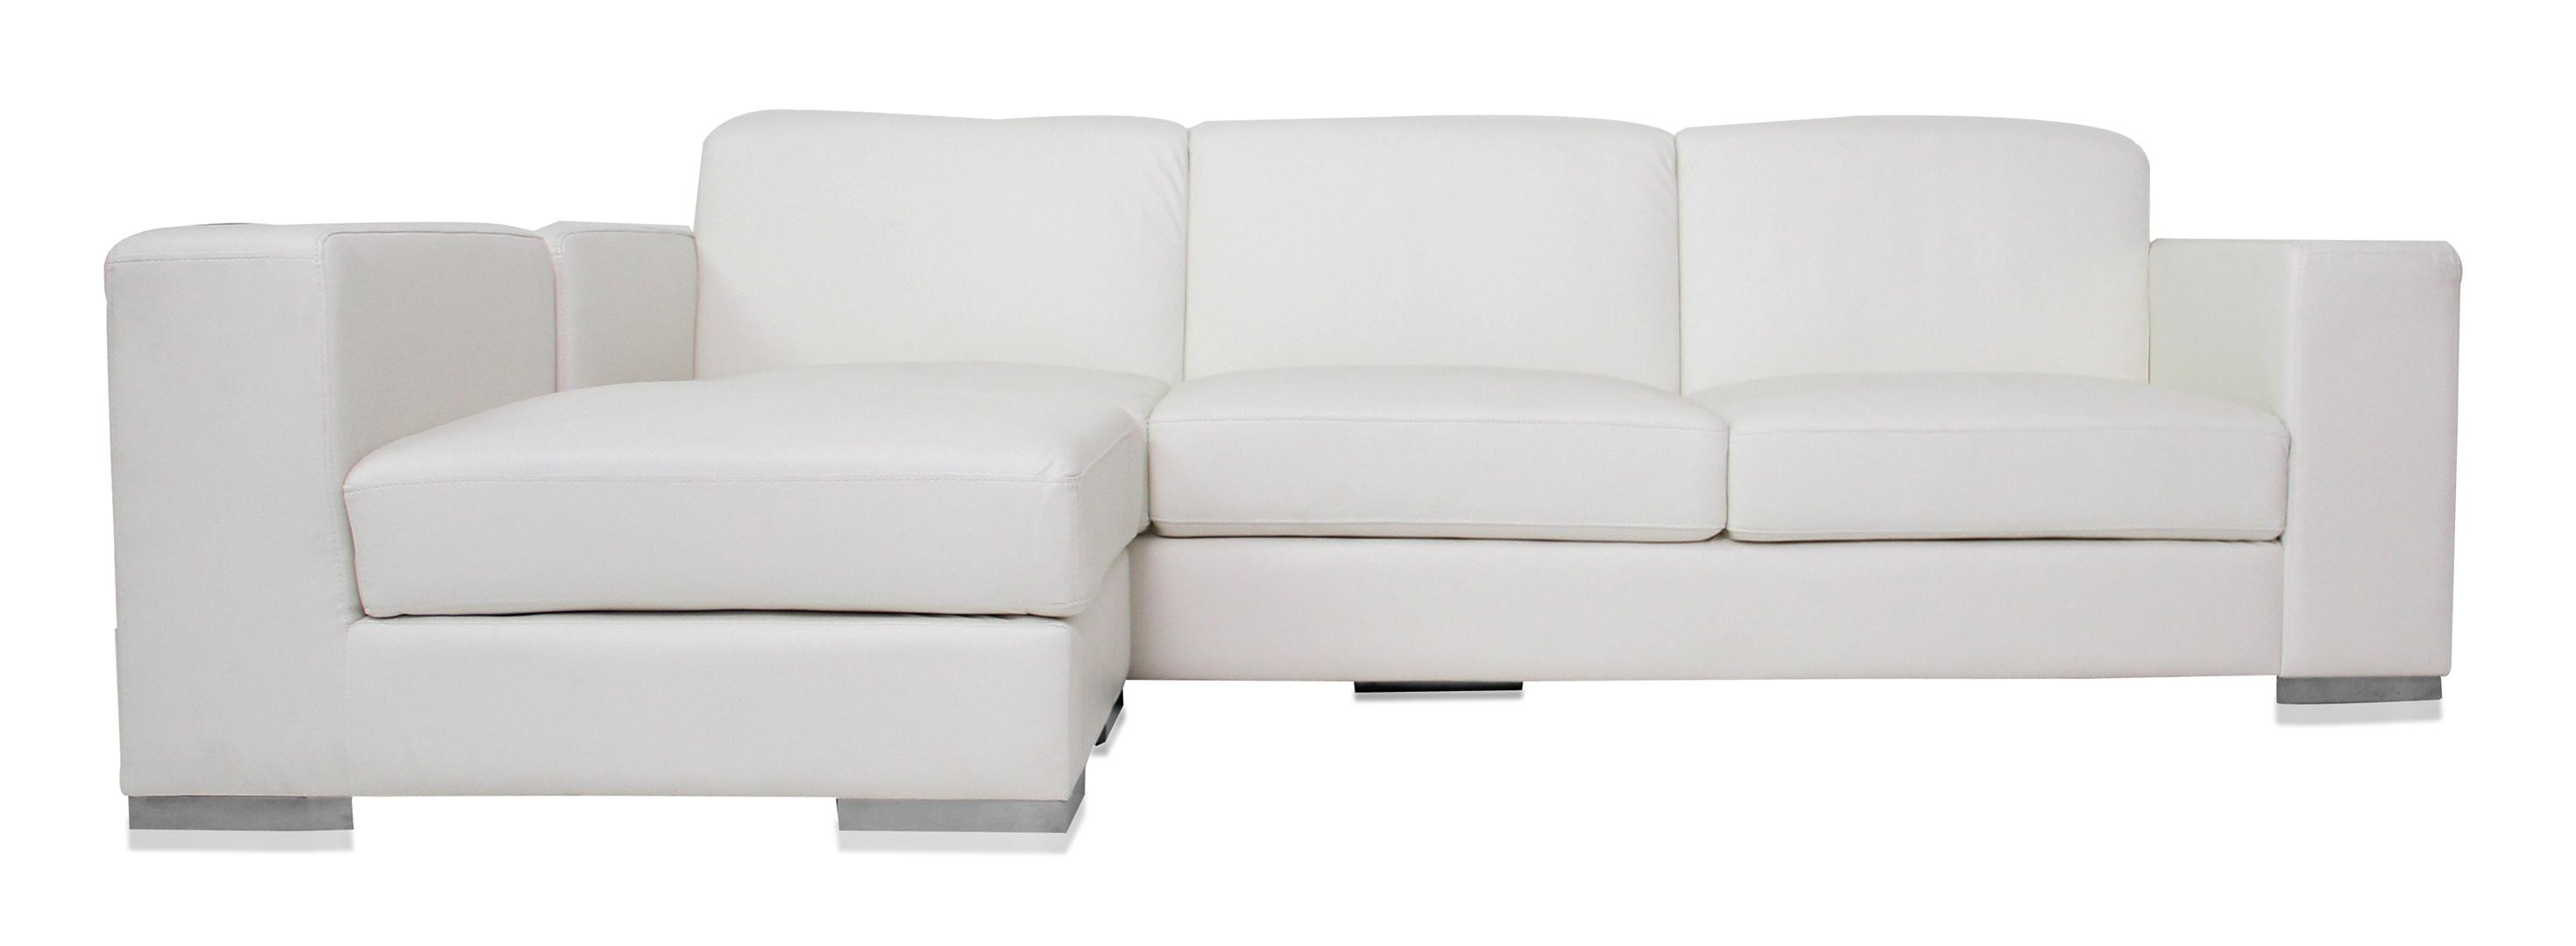 Modern White Sofa Regarding White Sofa Chairs (View 15 of 20)